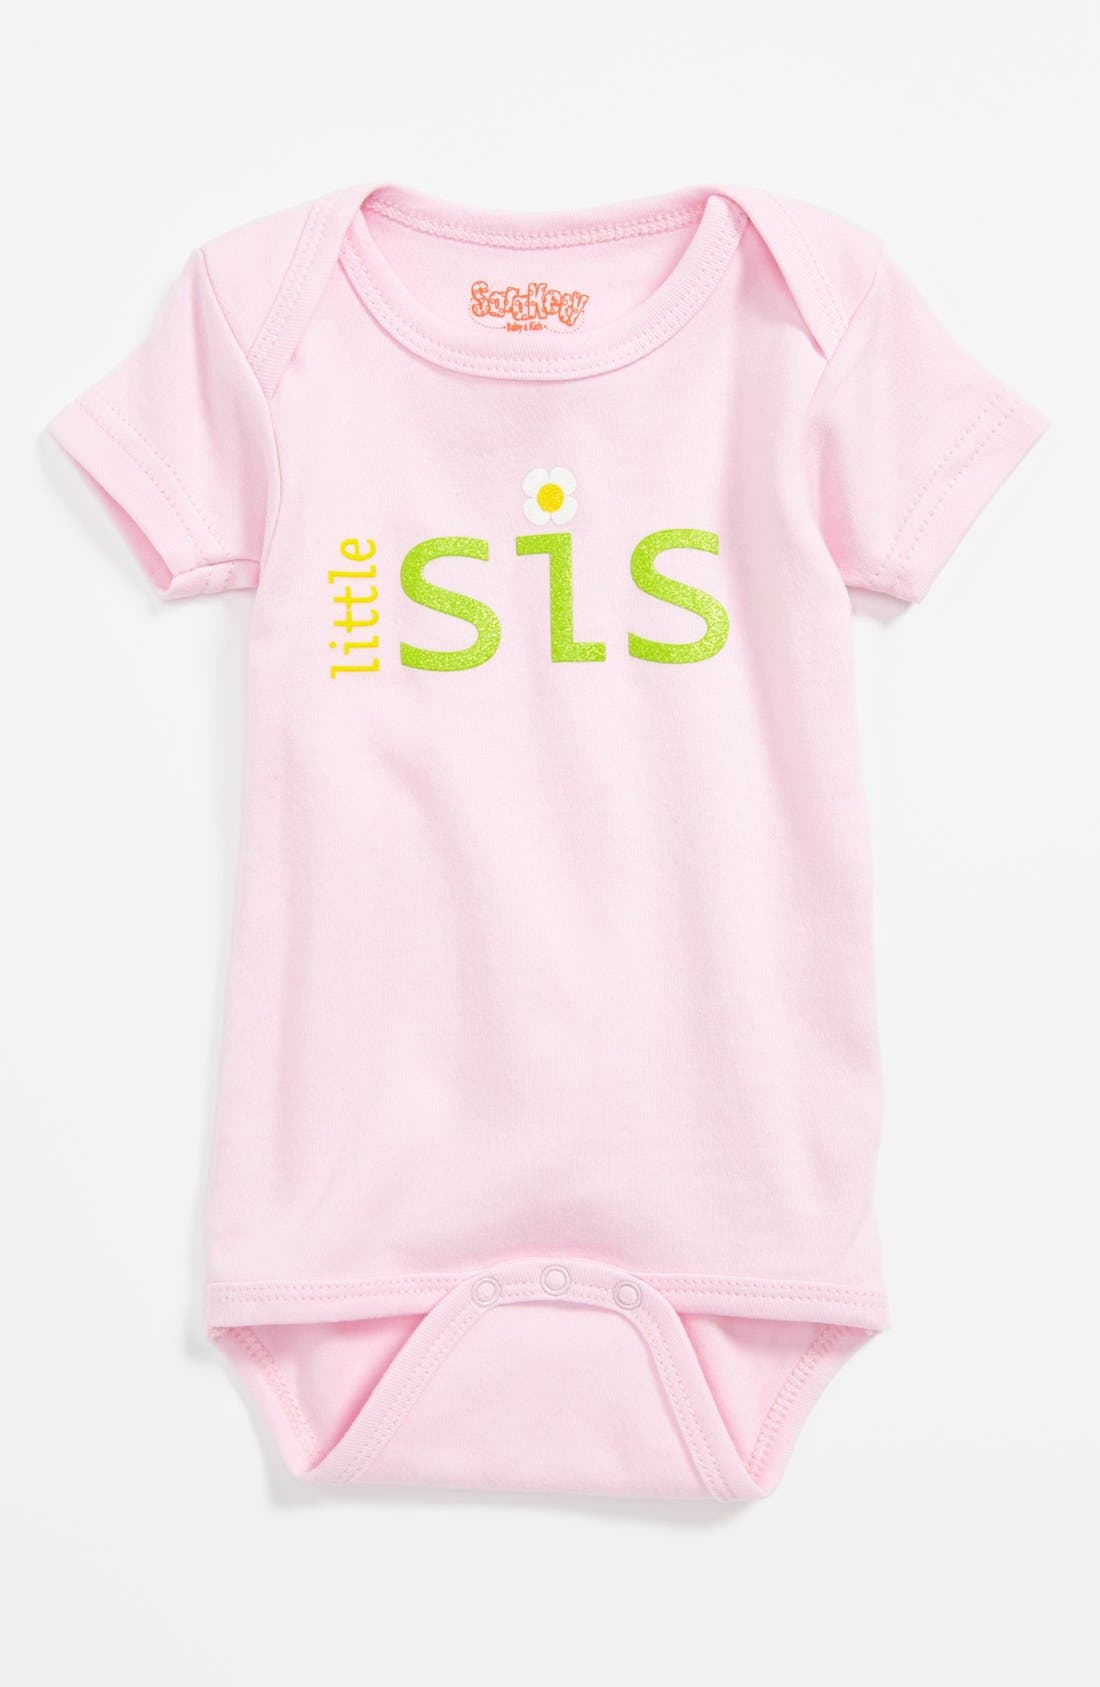 Alternate Image 1 Selected - Sara Kety Baby & Kids Romper (Baby Girls)